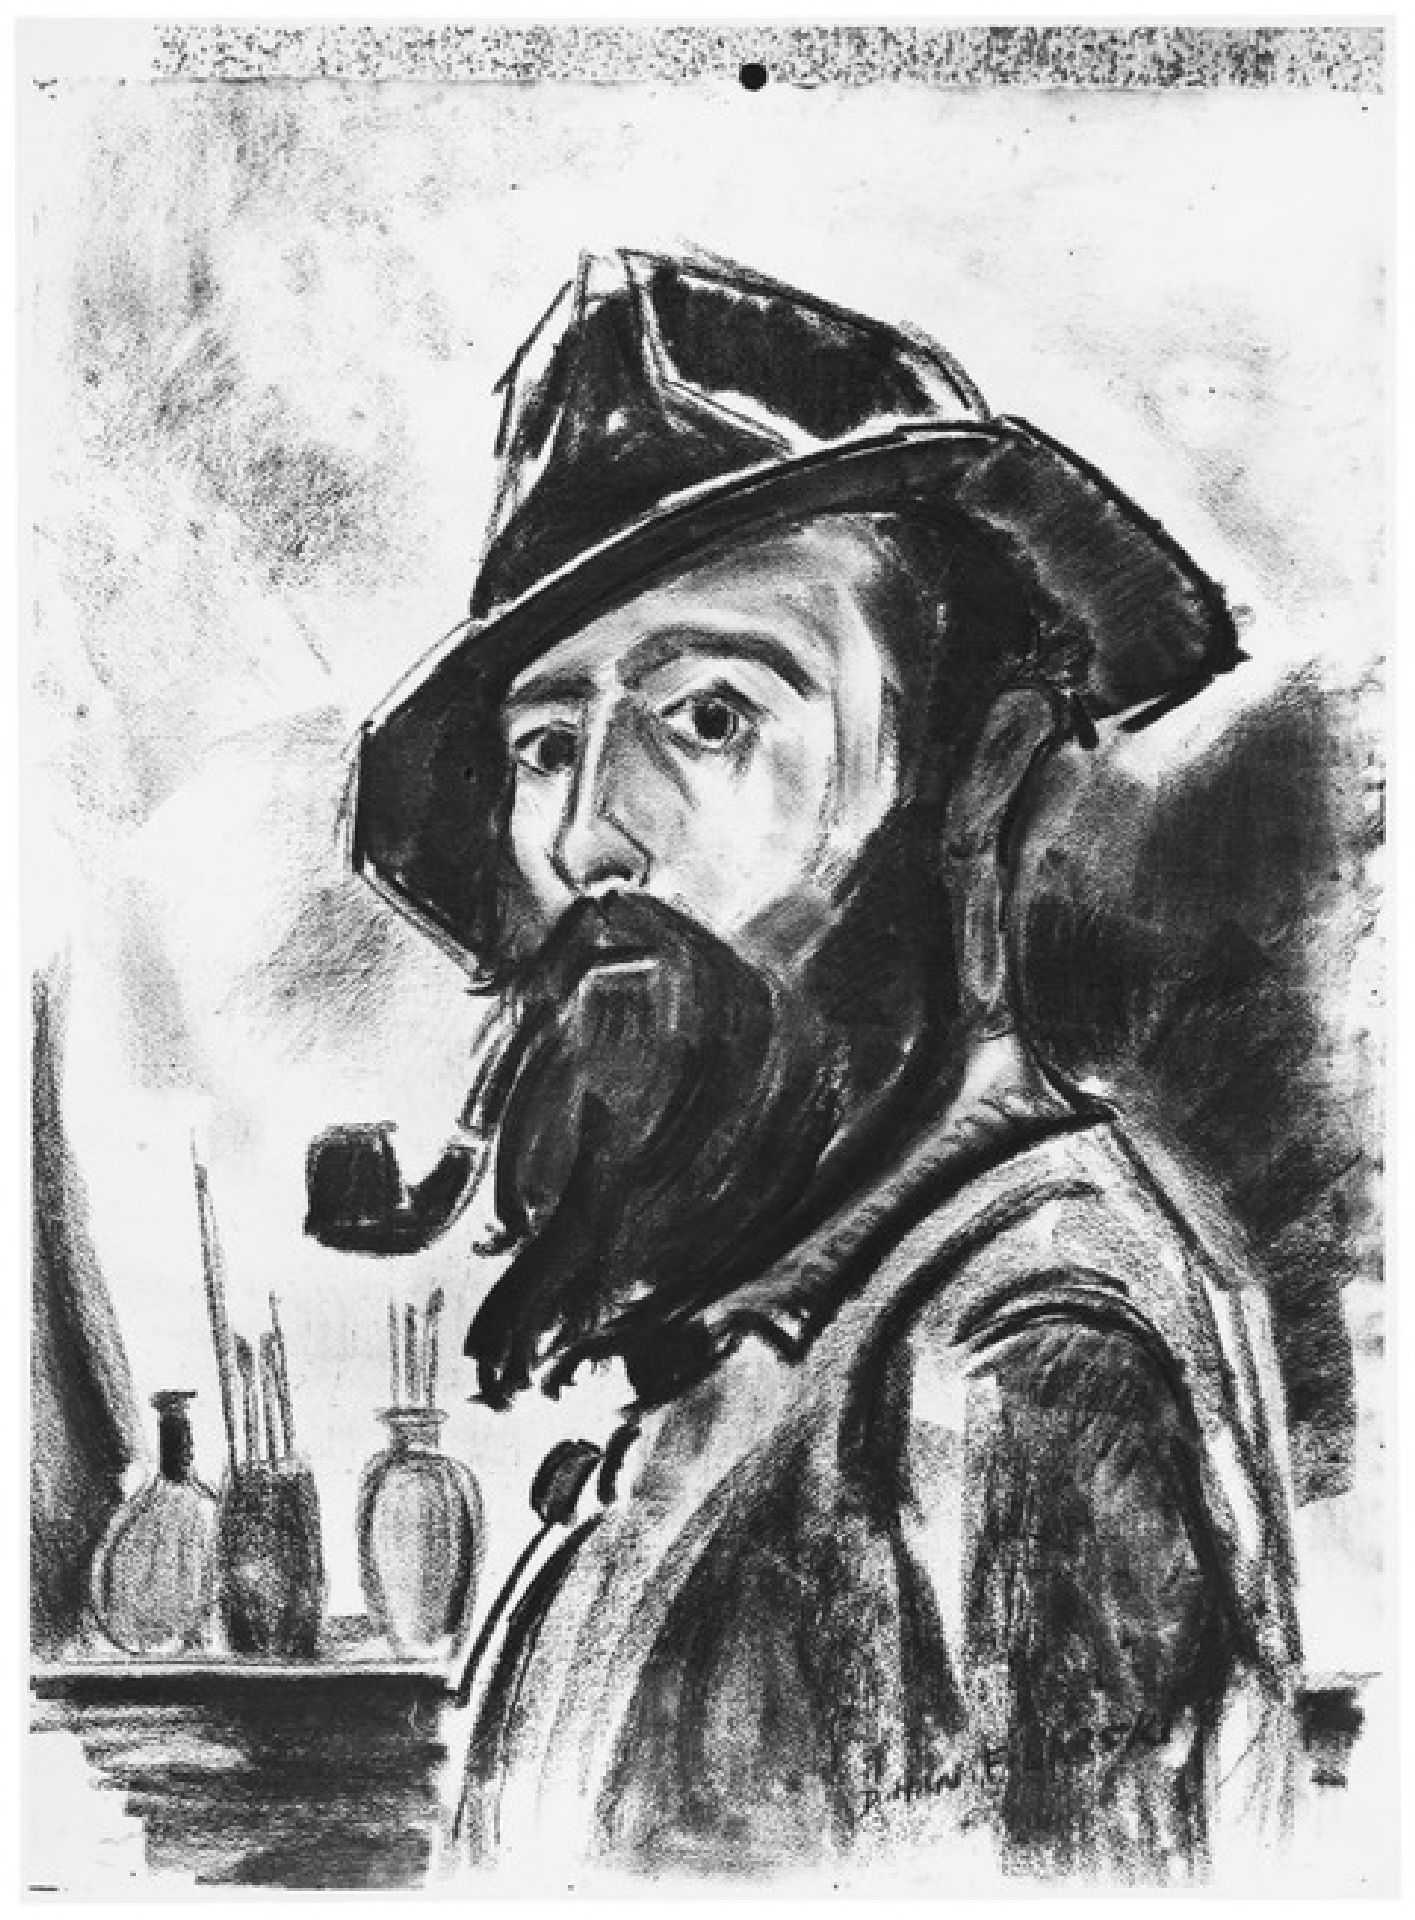 Portrait of artist, painter, watercolourist and draughtsman 'Dirk' Herman Willem Filarski